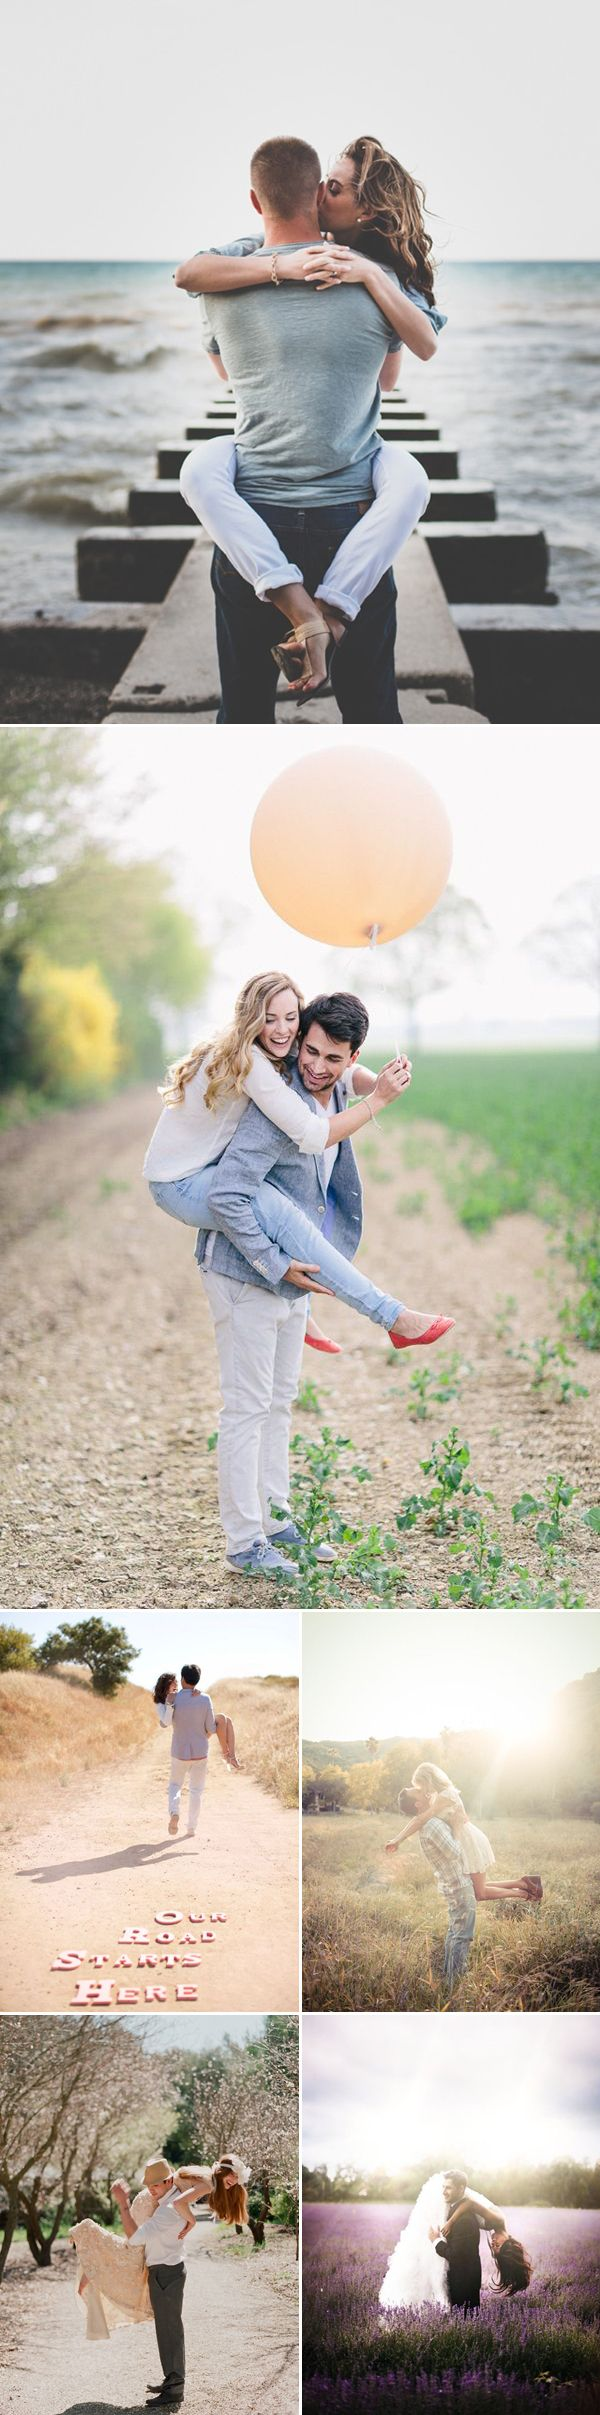 ideas for cute couple pictures